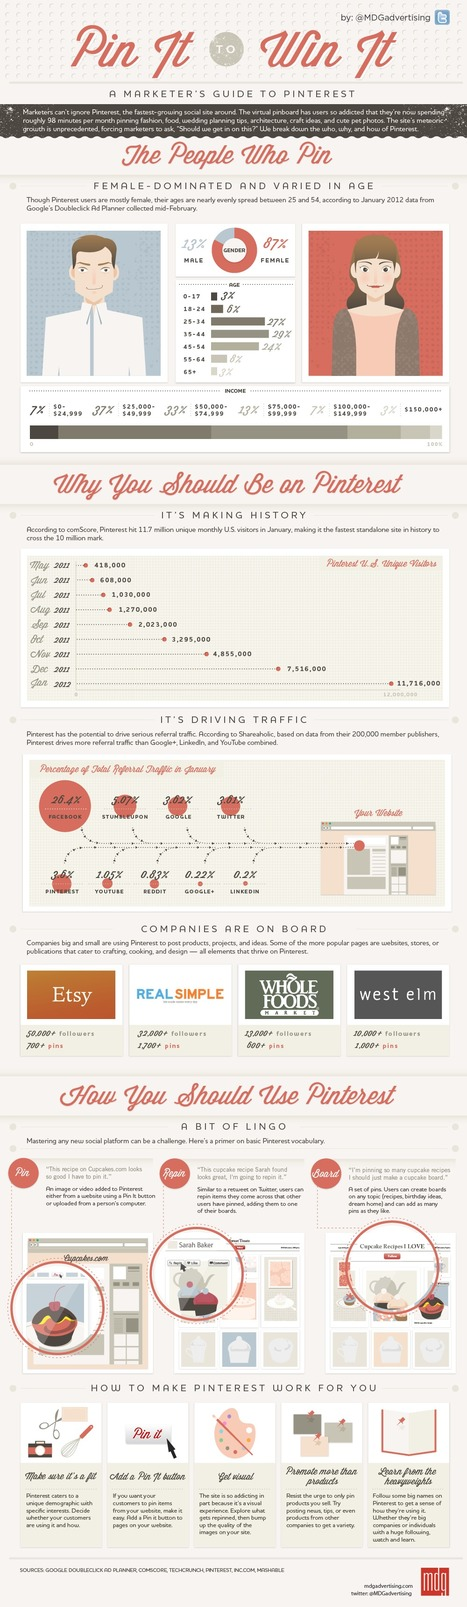 The Marketers Guide to Pinterest [Infographic] | SocialMediaDesign | Scoop.it